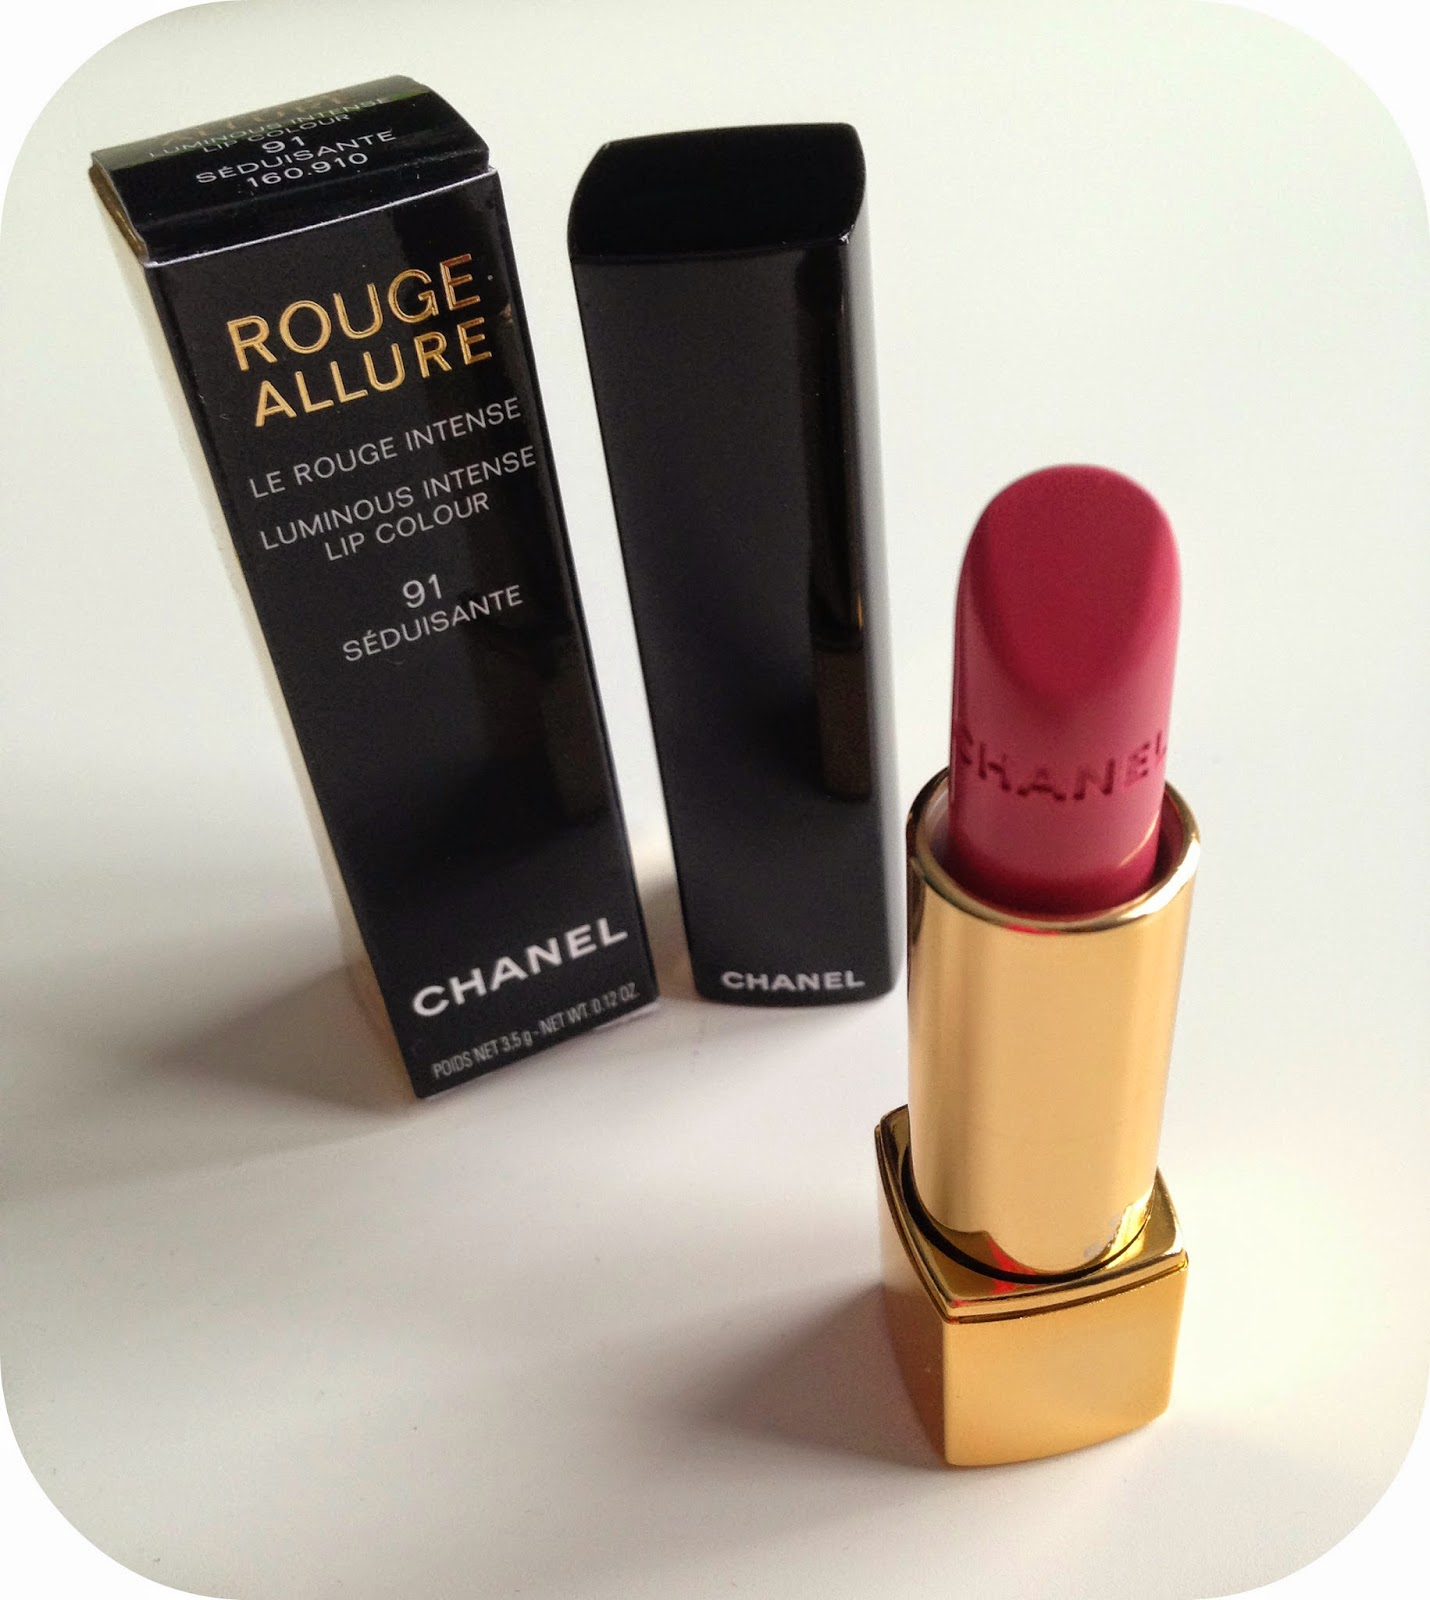 Chanel Rouge Allure 91 Chanel Rouge Allure 91